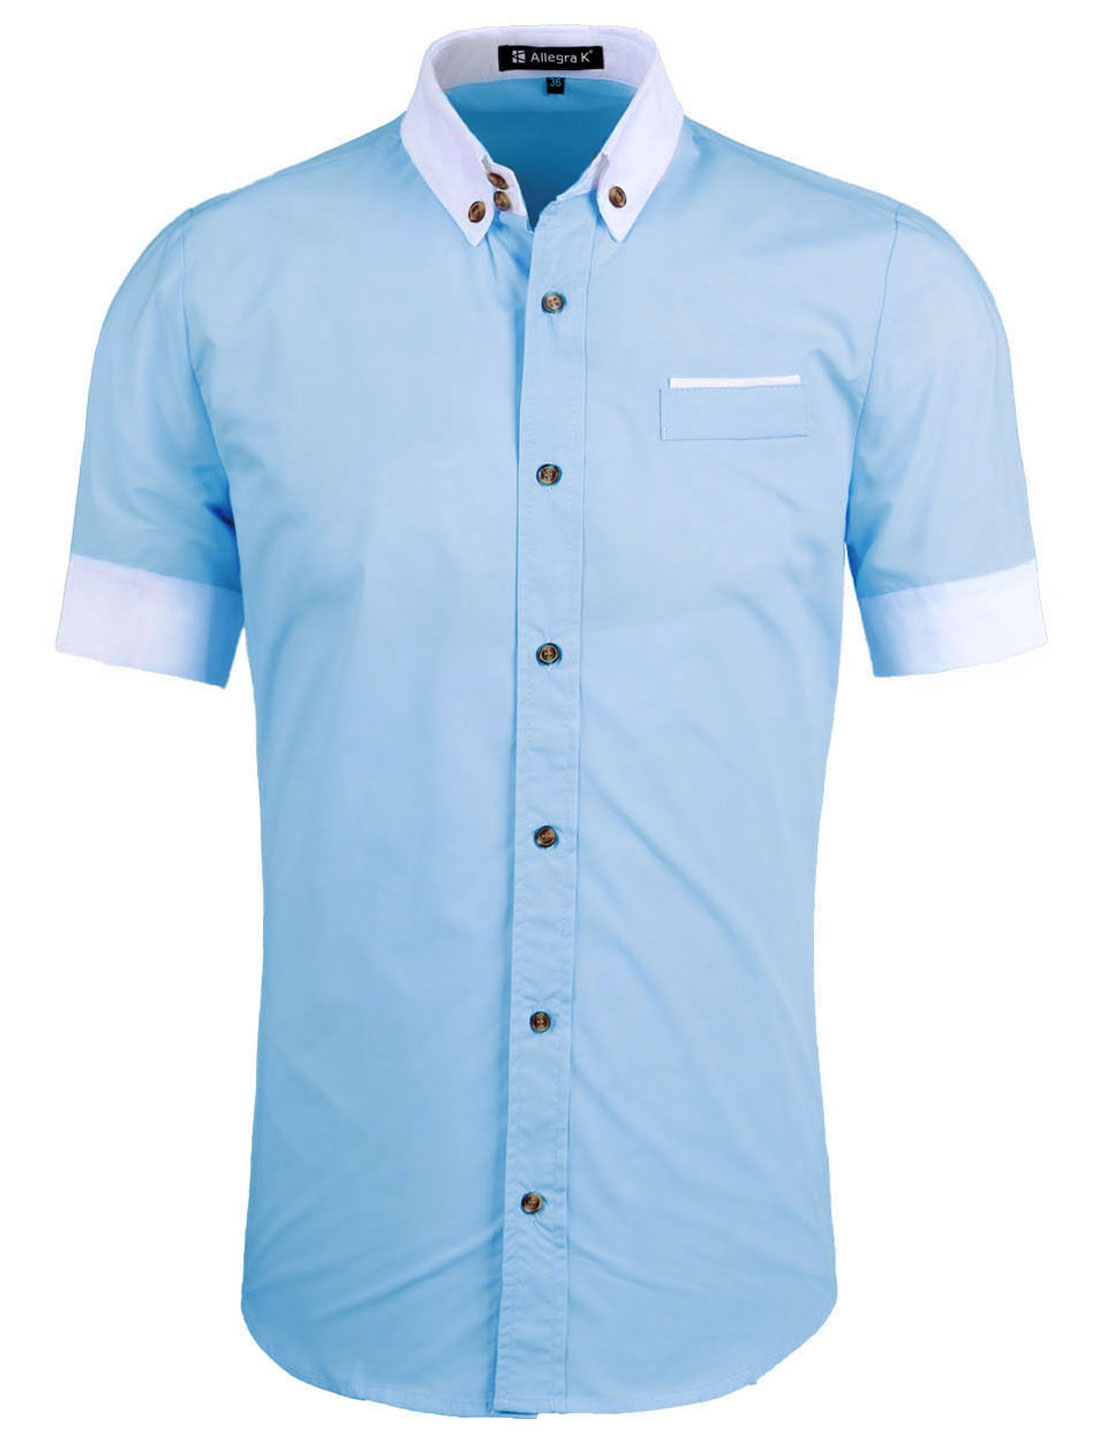 Men Contrast Color Short Sleeves Round Hem Shirt Light Blue XL